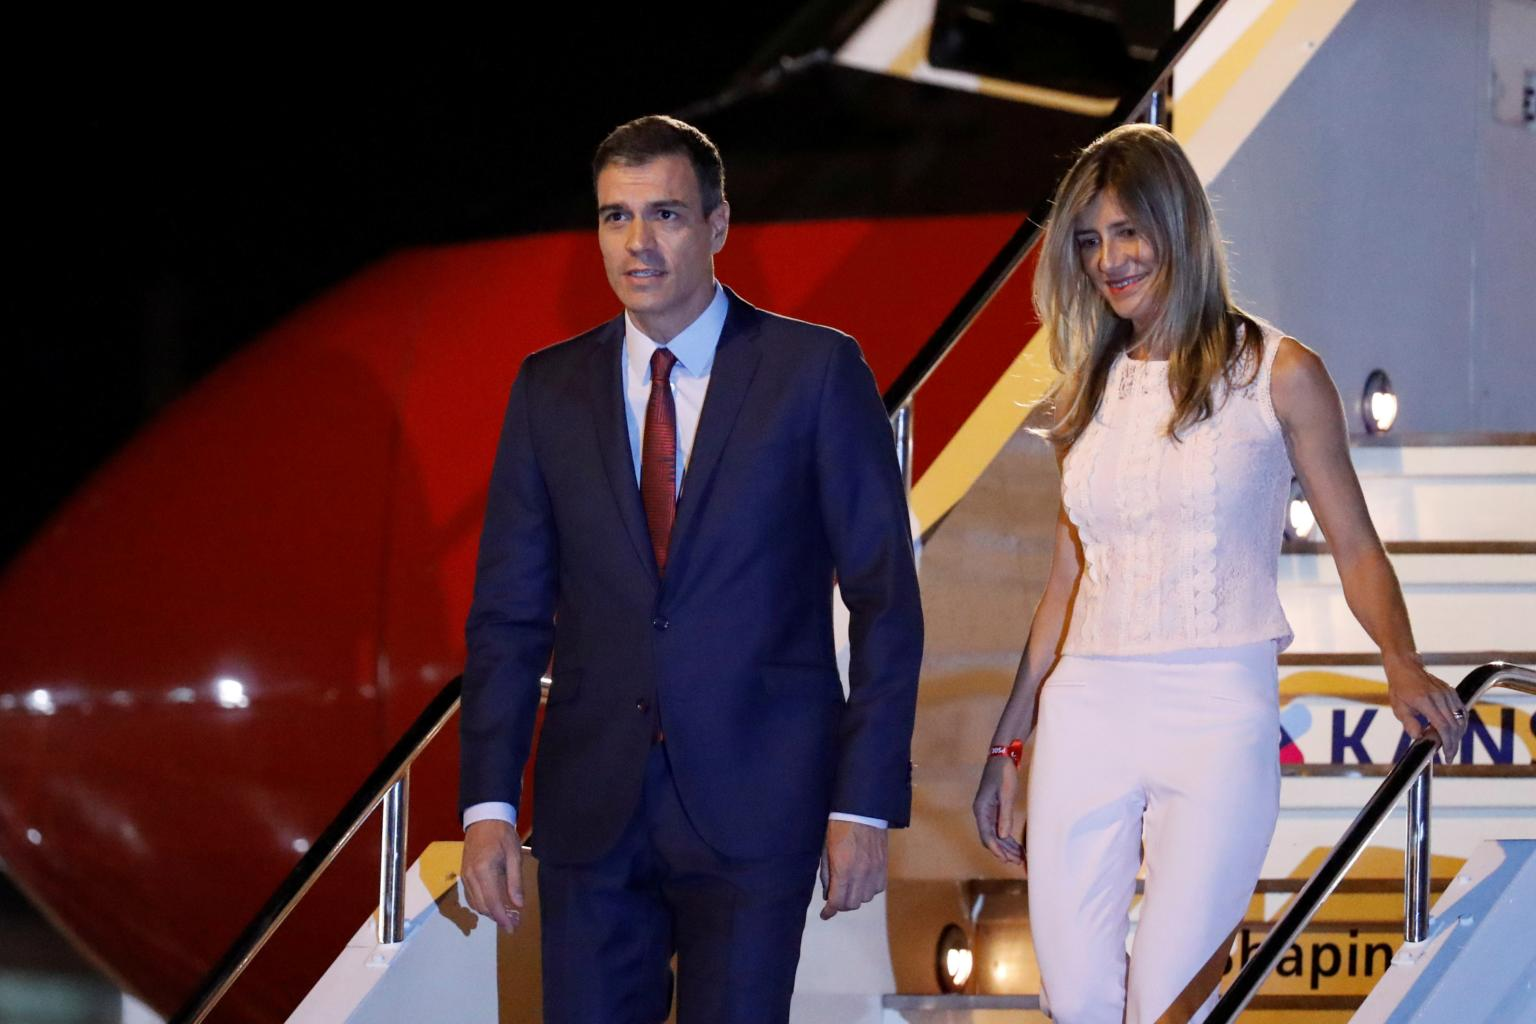 President Sánchez and his Family Arrives Tomorrow